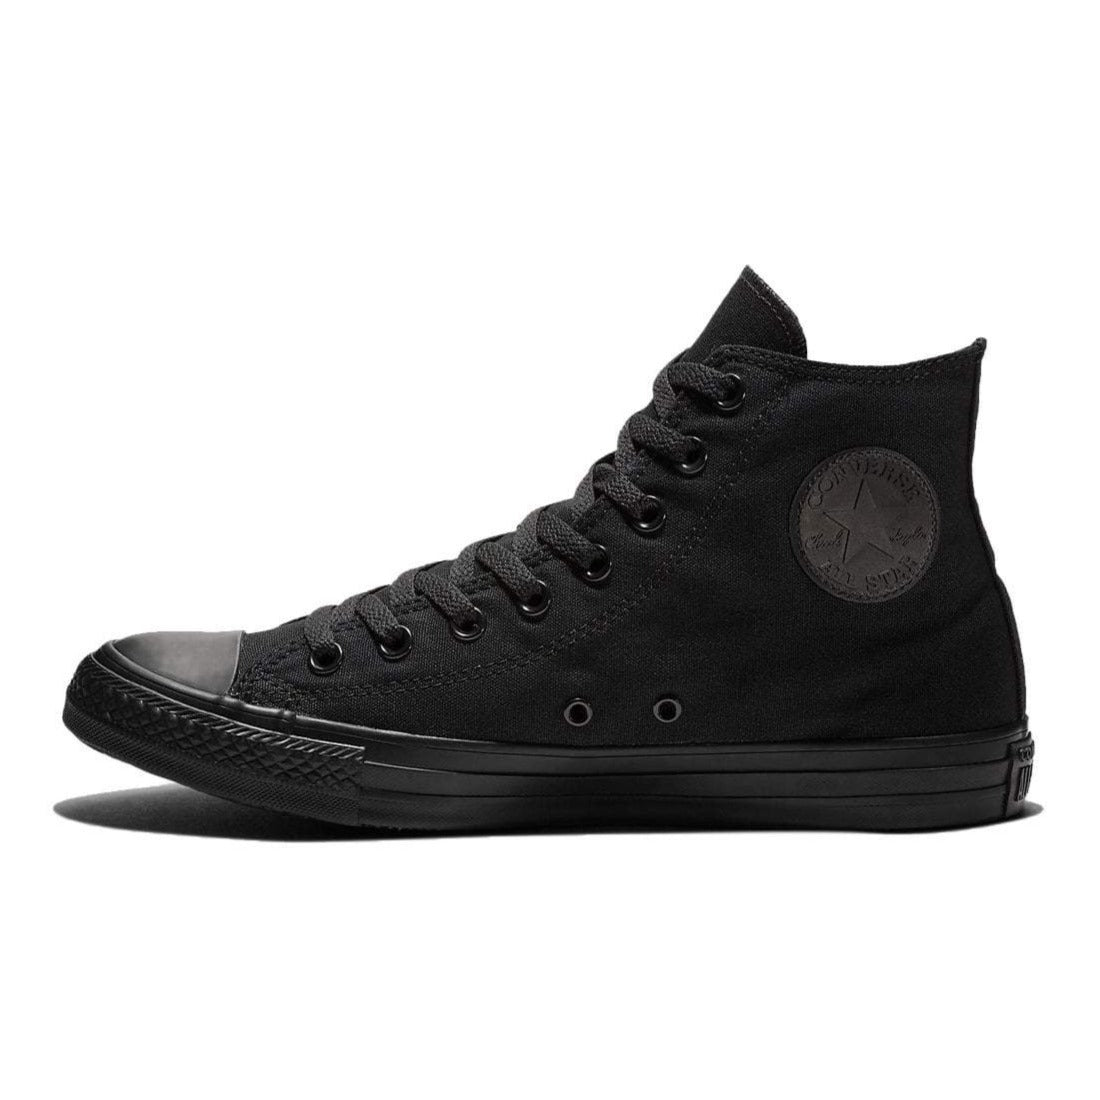 Unisex Converse Chuck Taylor All Star High Top Shoe